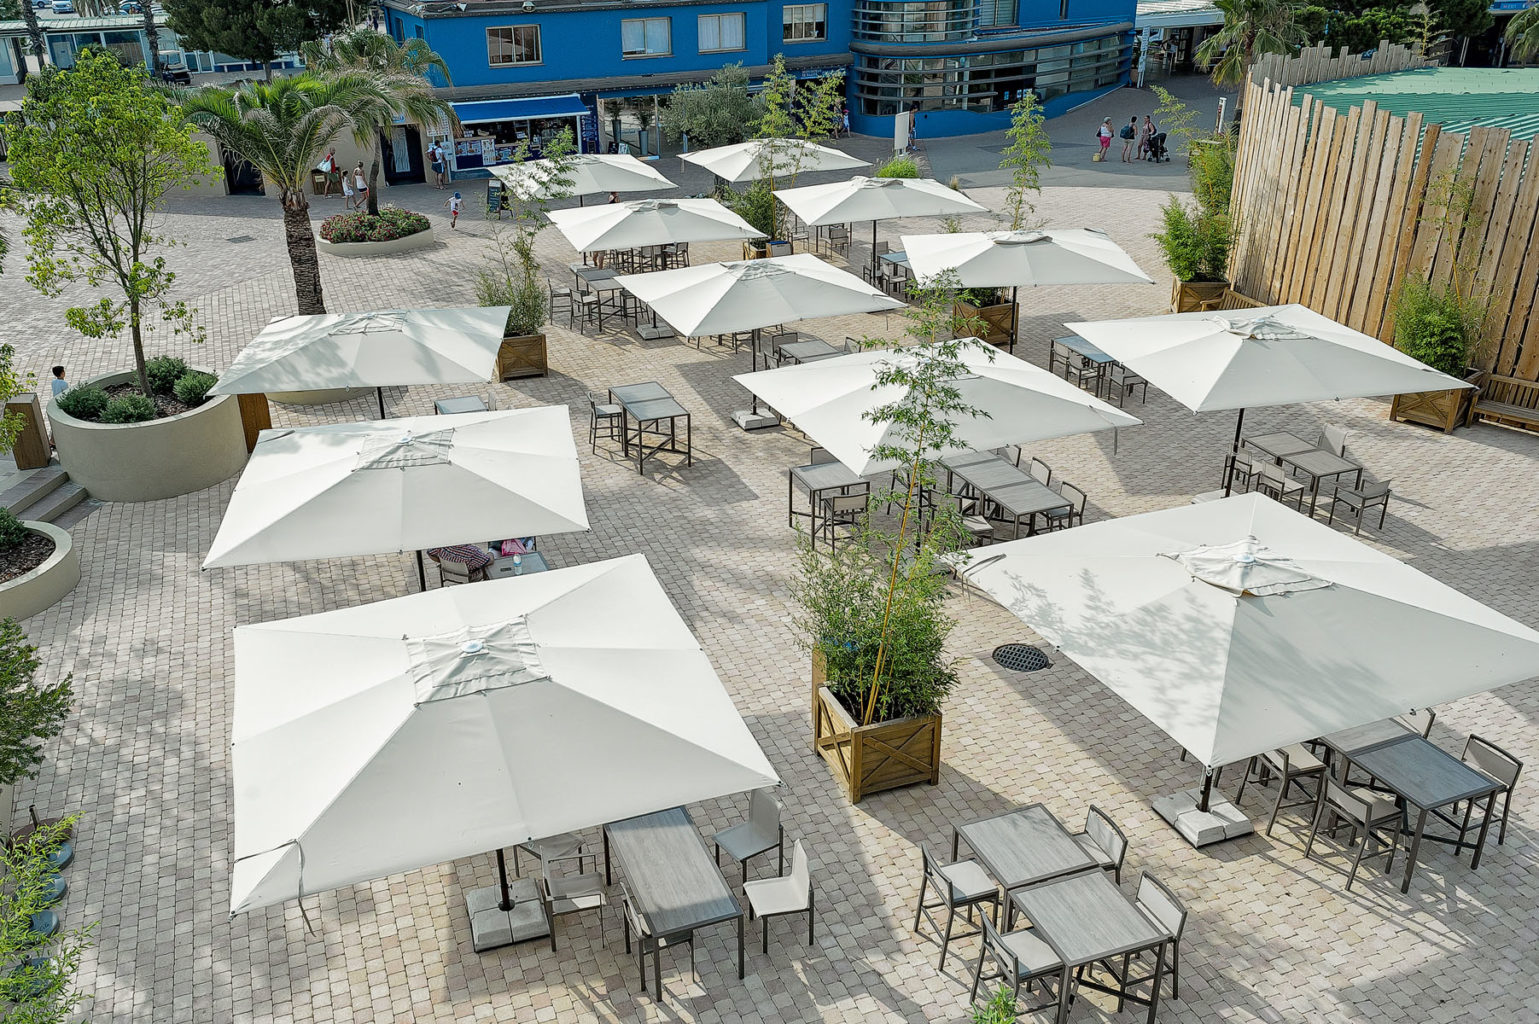 Poggesi Center Post Restaurant Umbrellas - Jok Collection